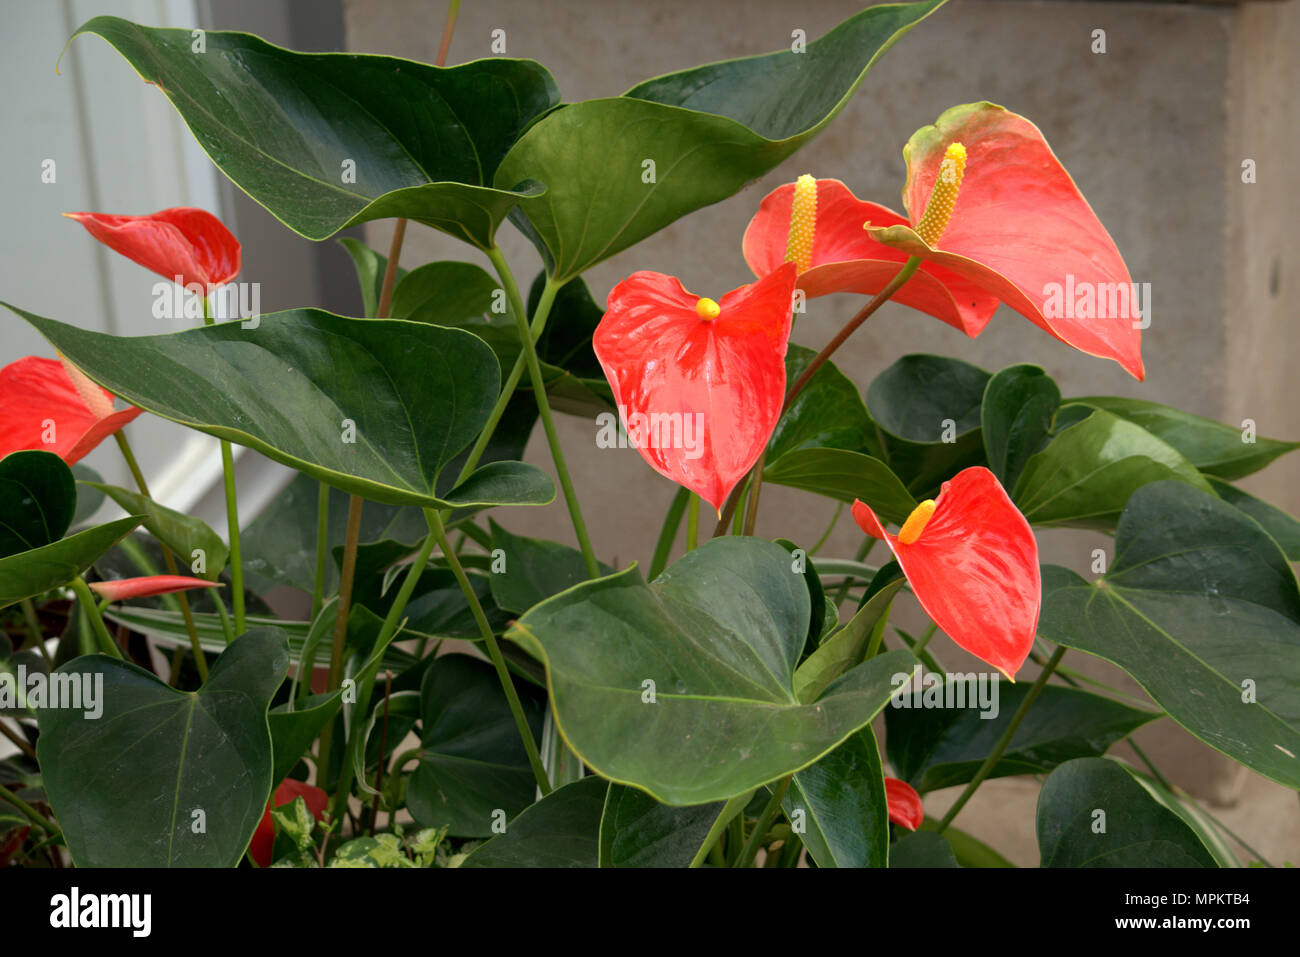 Red peace lily stock photos red peace lily stock images alamy red peace lily spathiphyllum stock image izmirmasajfo